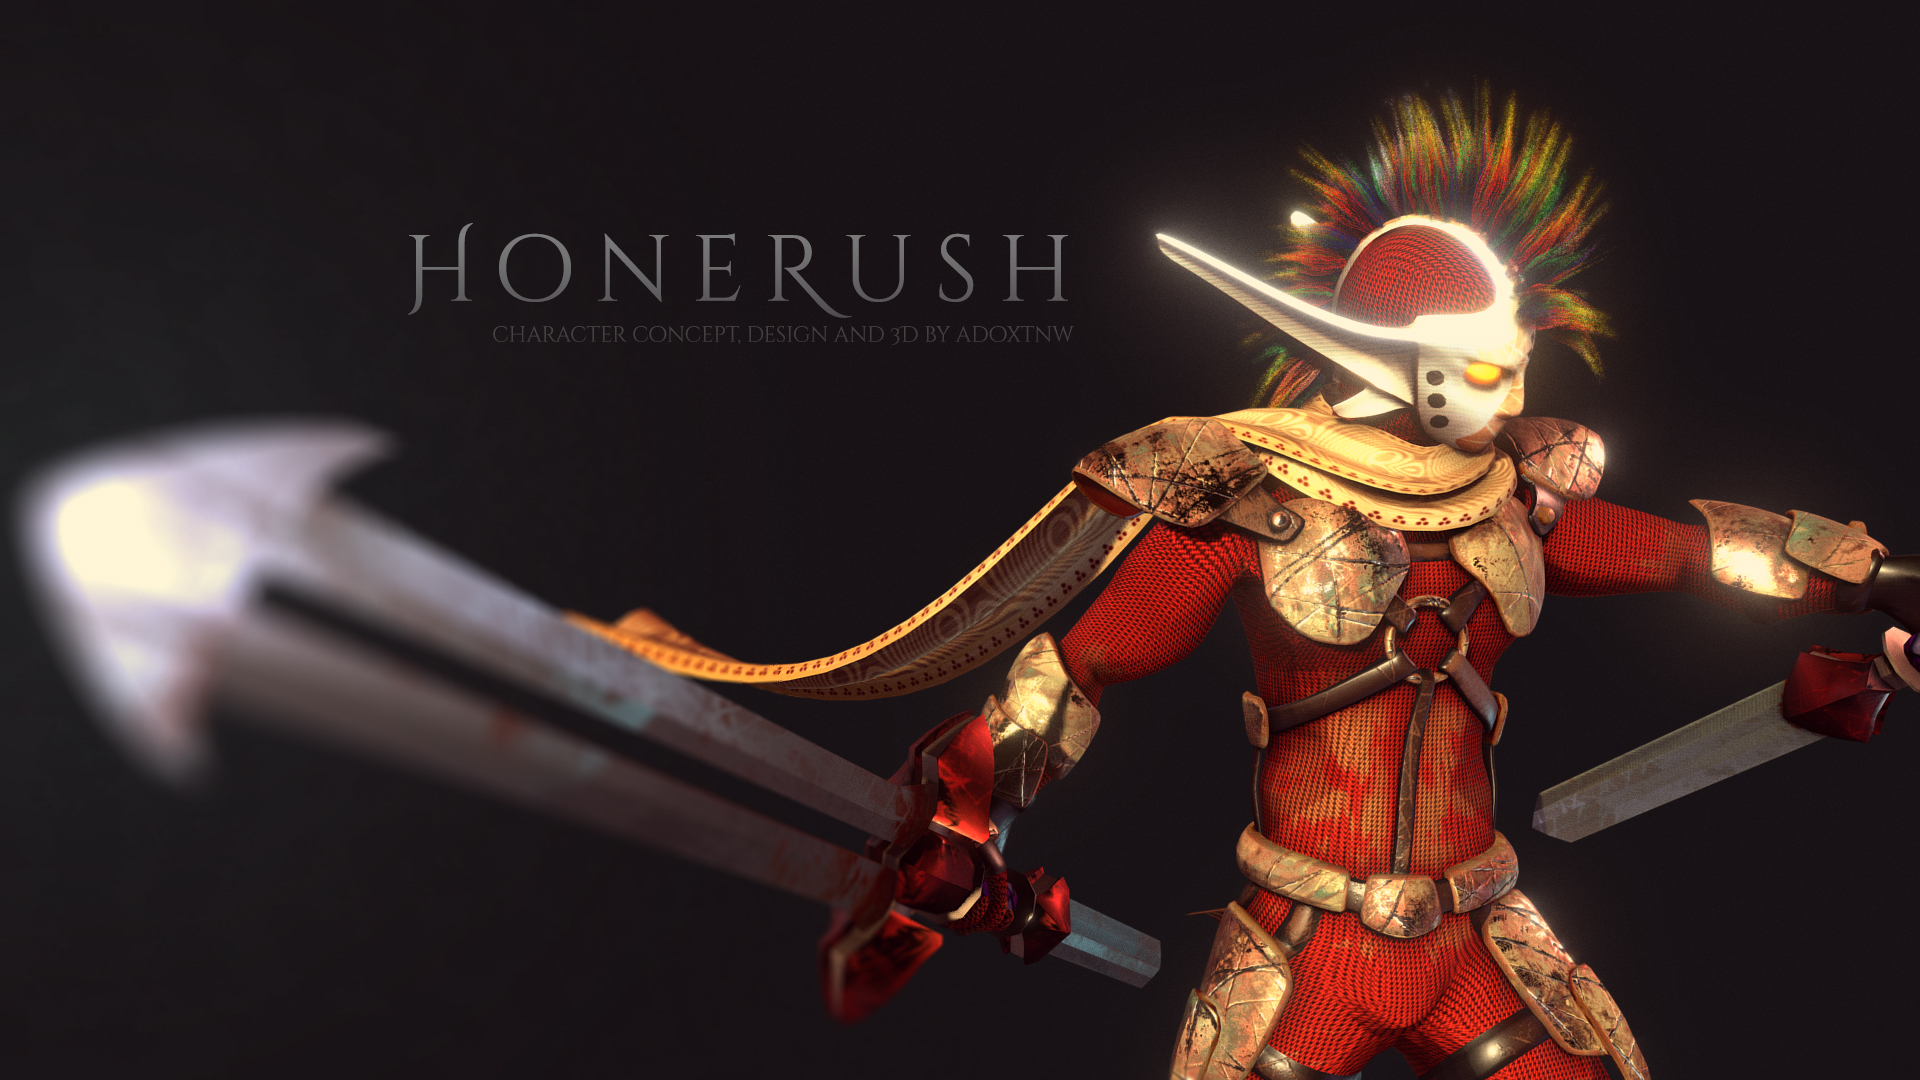 Honerush_Cinematic_002